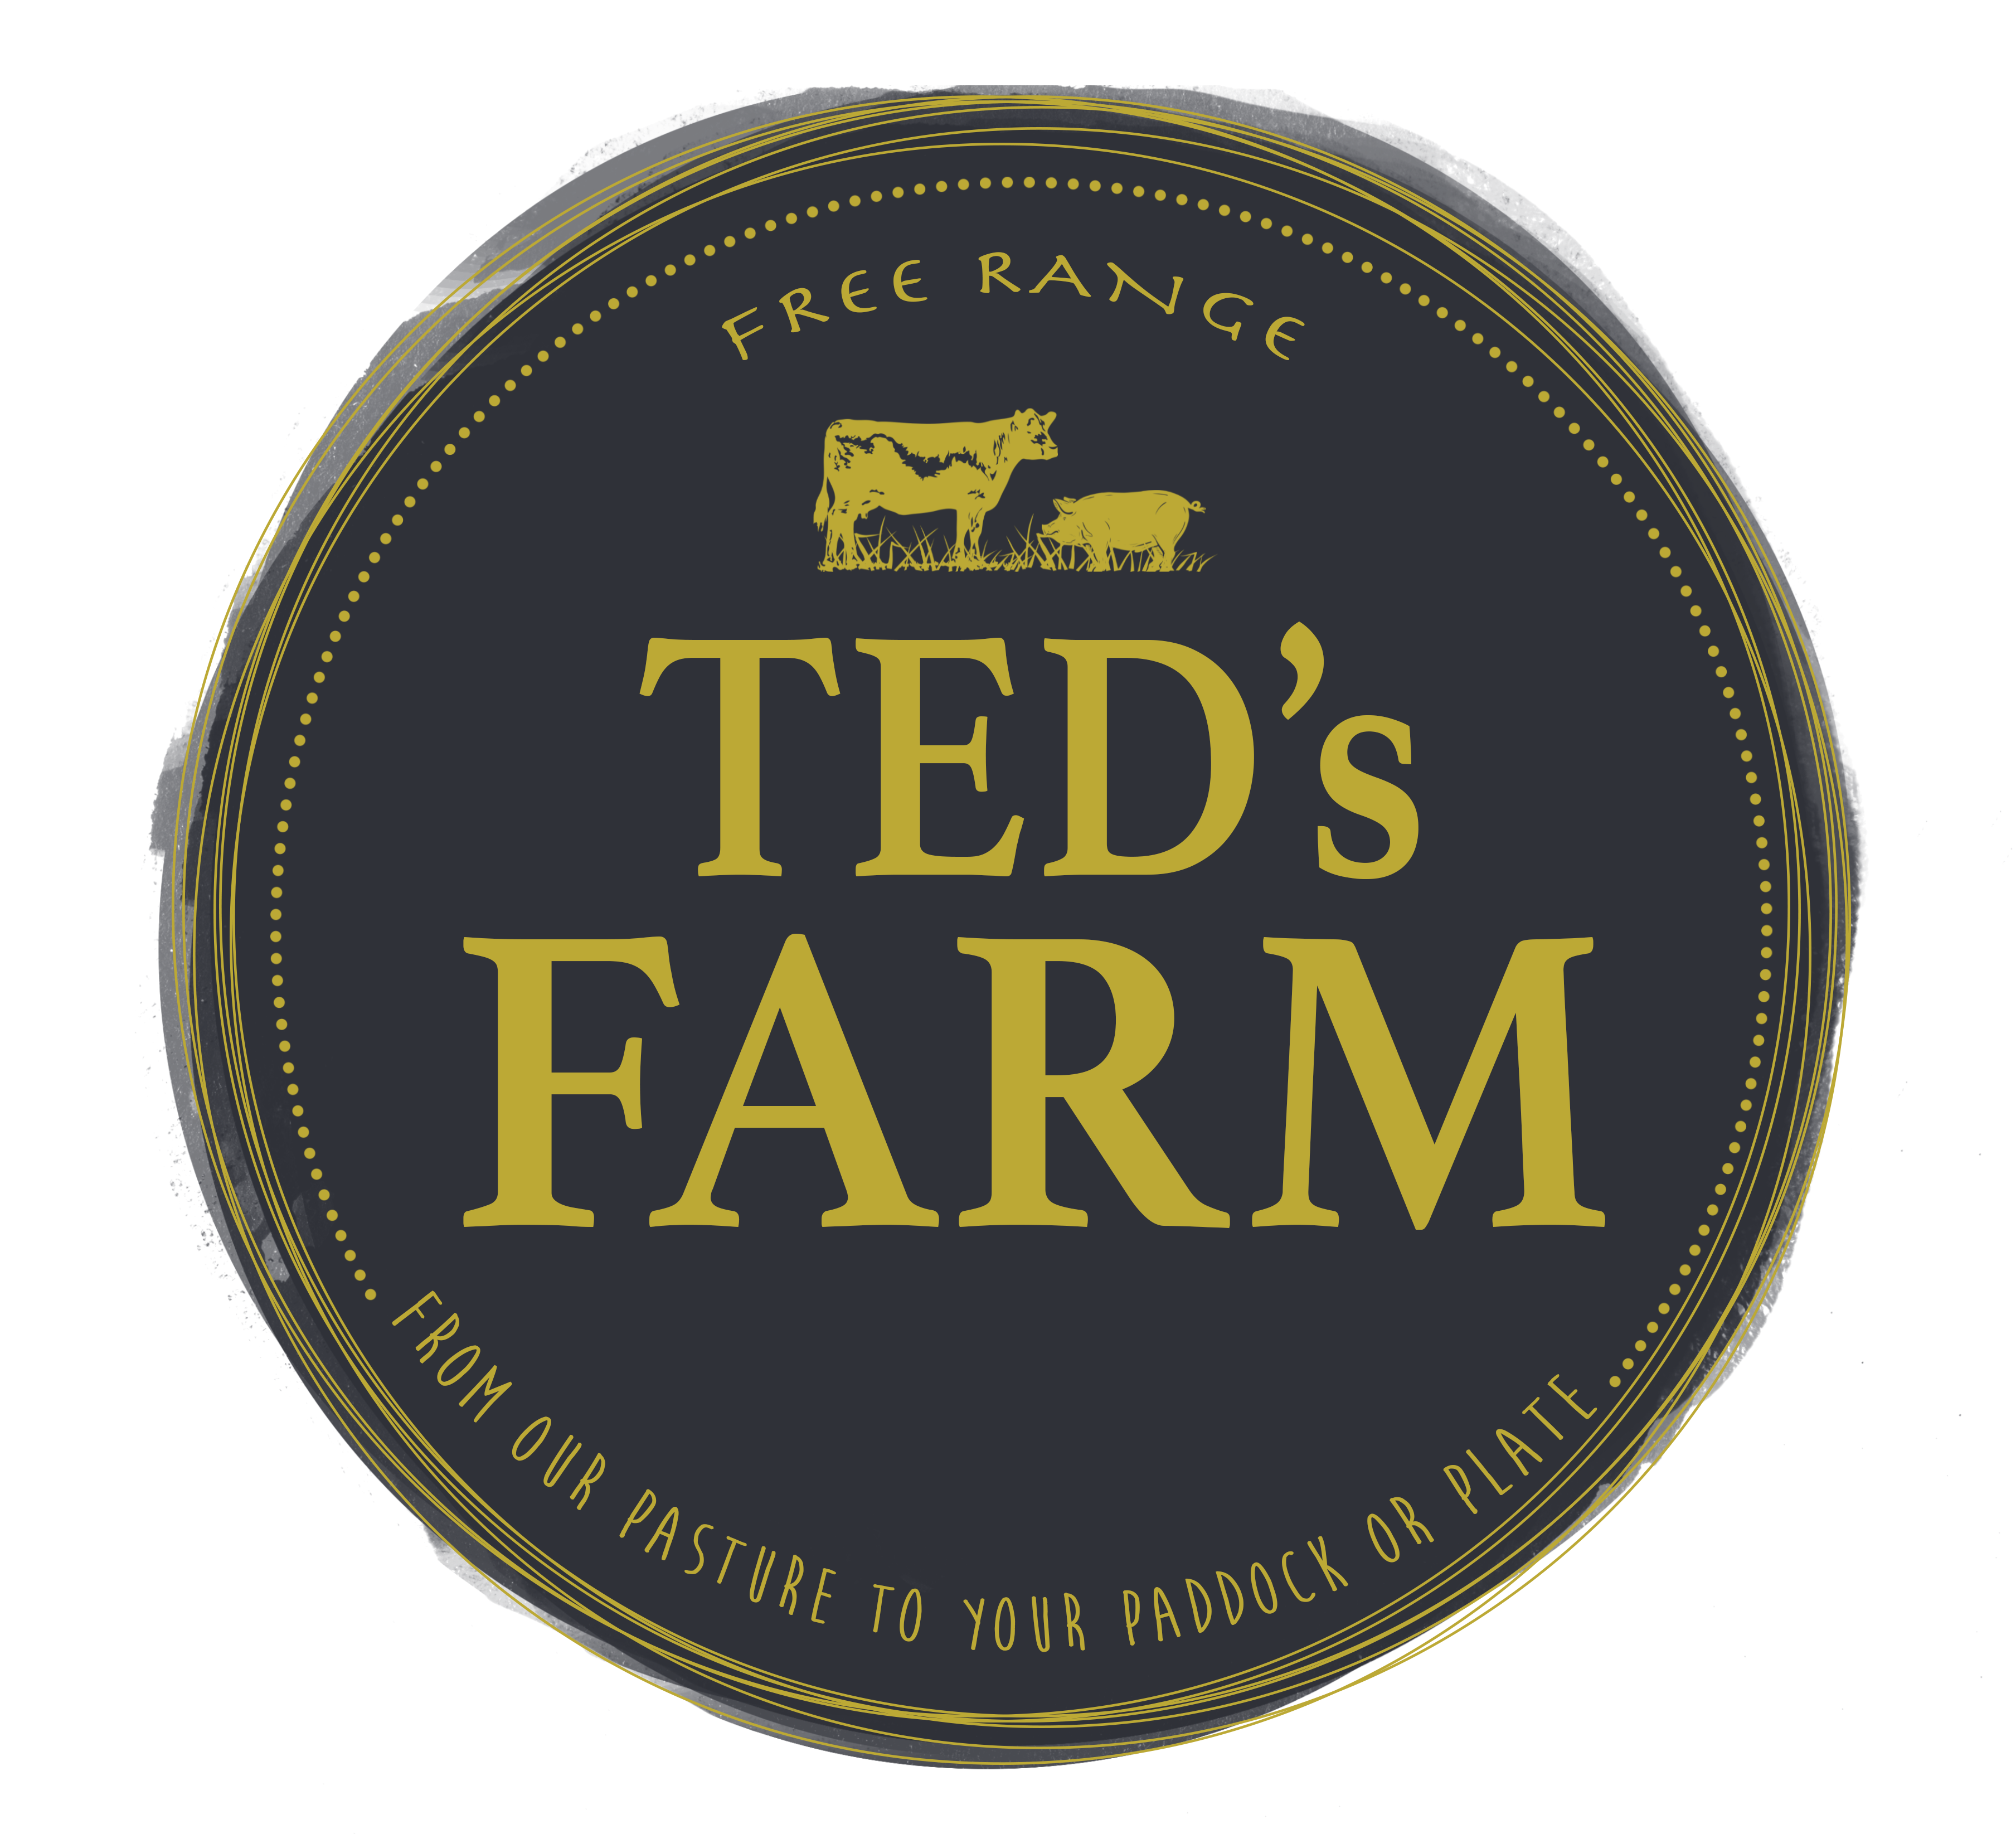 TED'S FARM Final WC Mustard & Charcoal